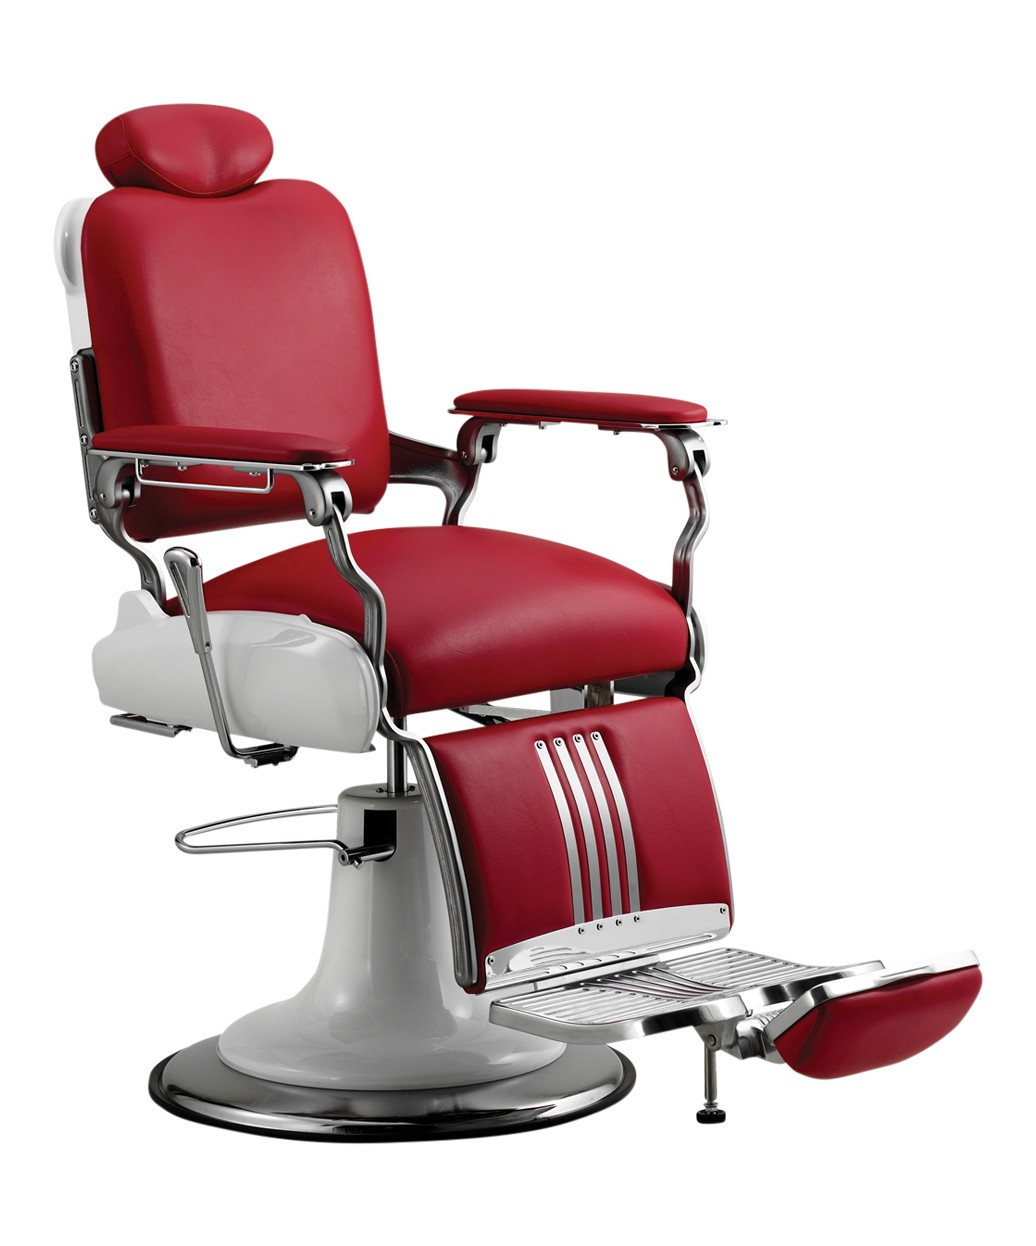 Takara Belmont BB 0090 Koken Legacy Barber Chair